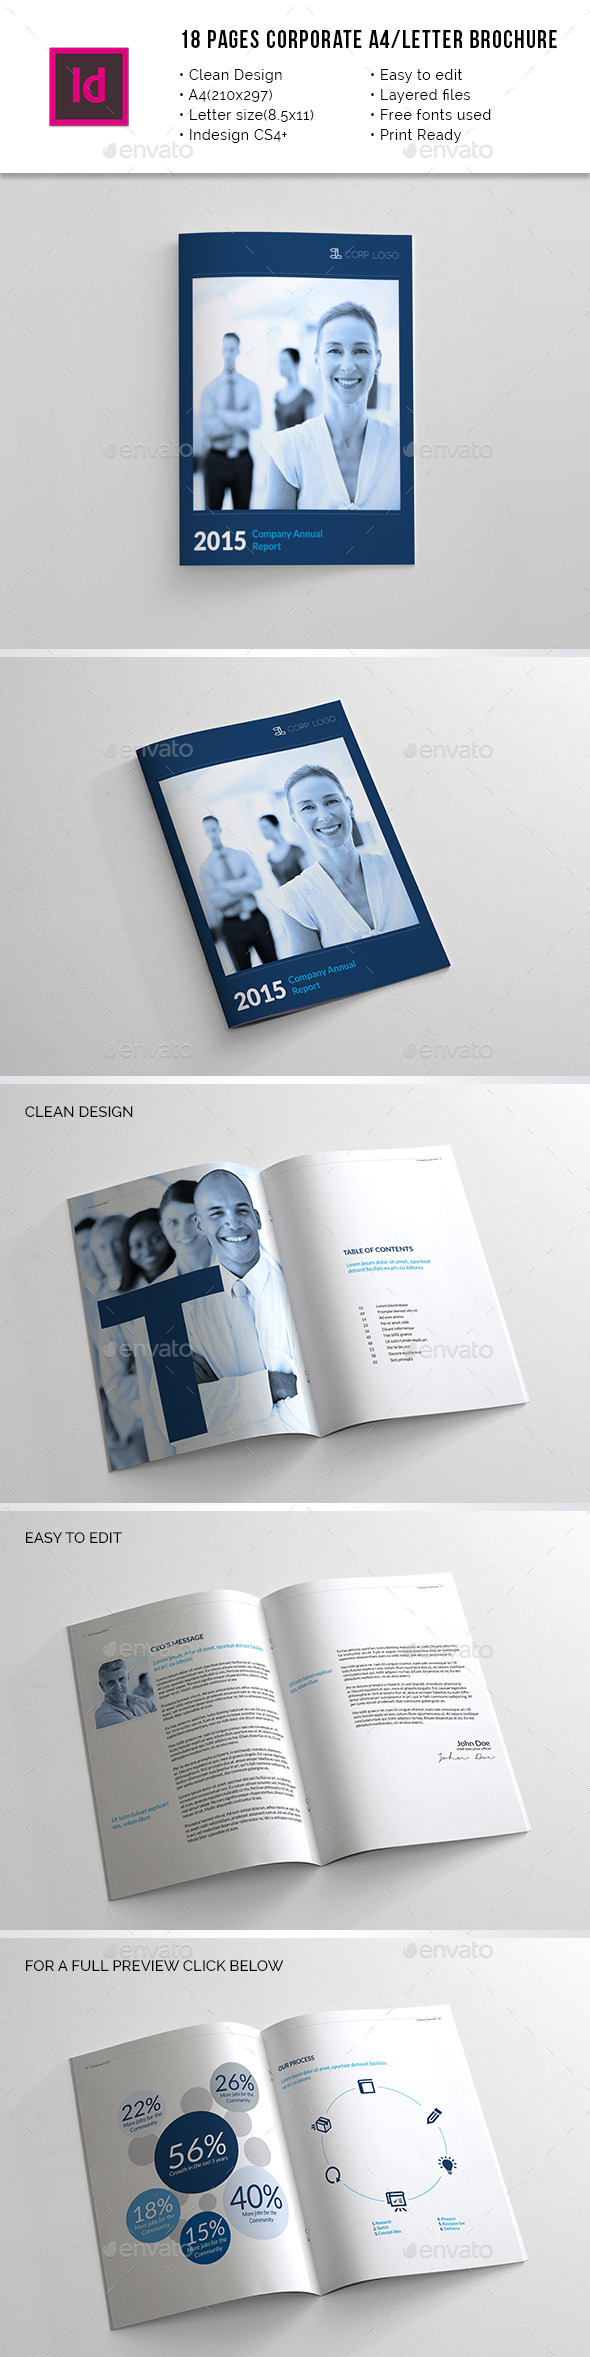 18 Pages Corporate A4 / Letter Annual Report - Corporate Brochures